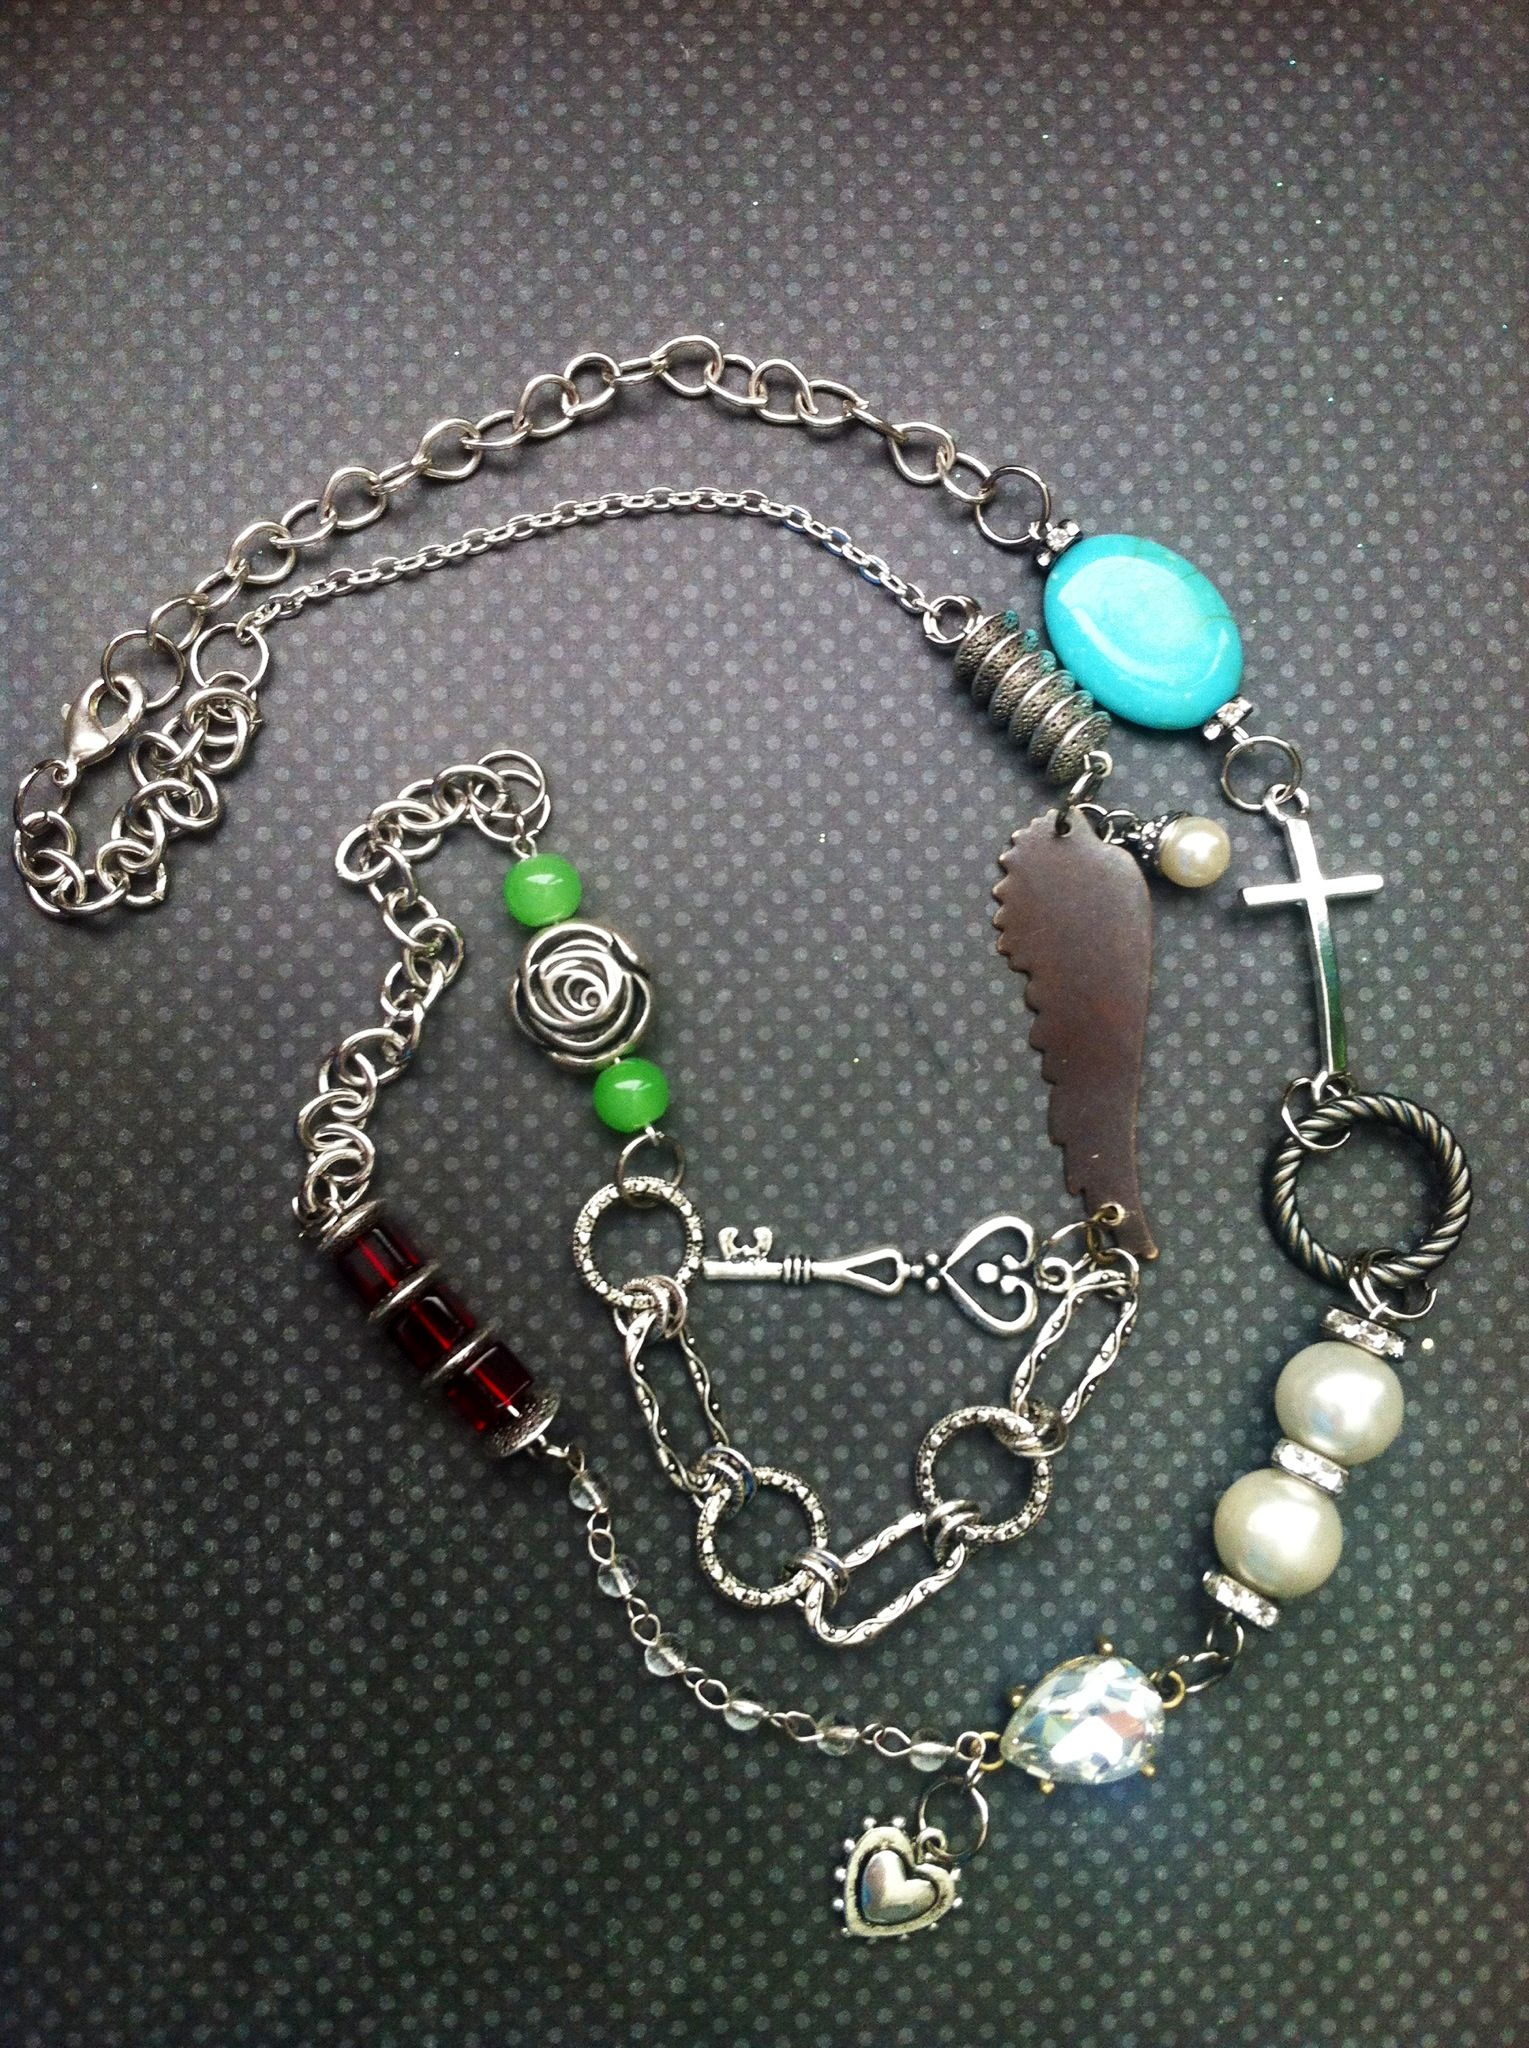 A little bit of everything... Mixed chains/beads/charms/rhinestones.... For sale on jewelry FB page: Leave it at the Cross 3:16